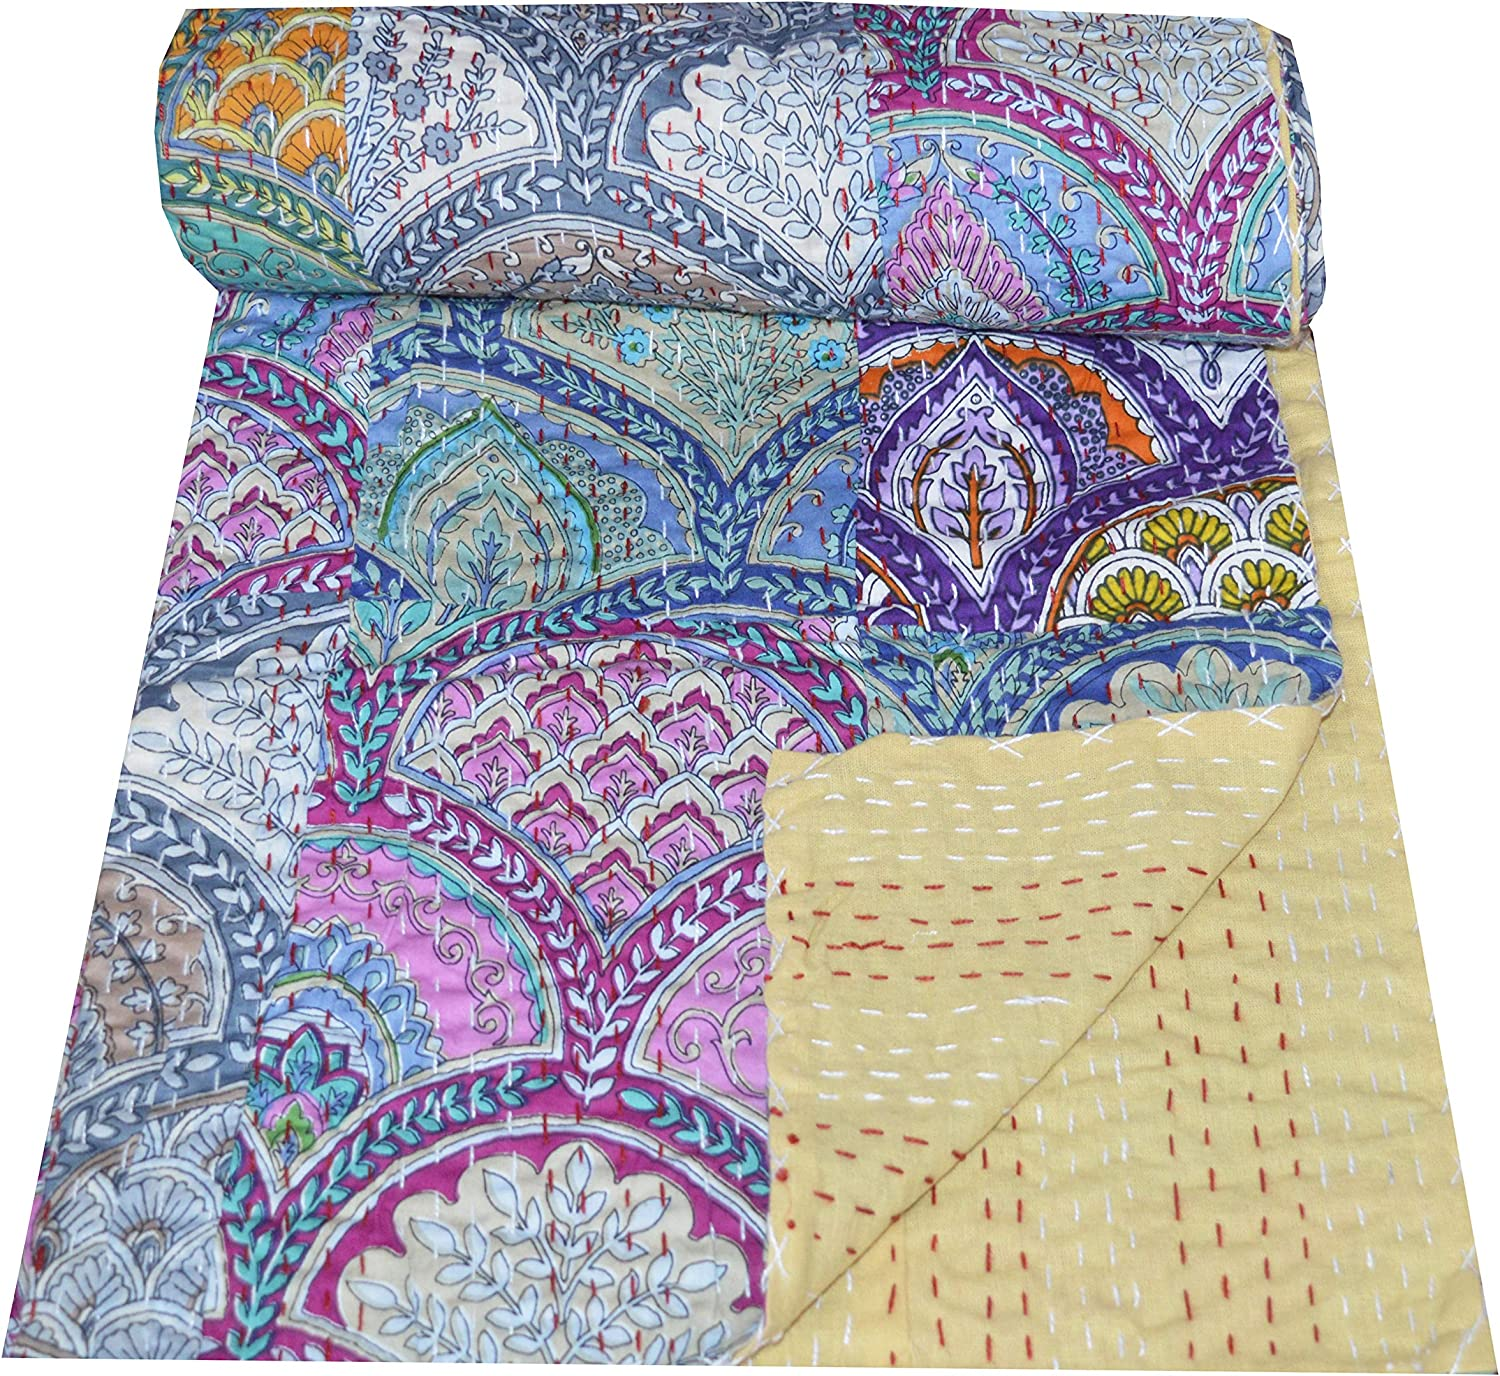 V Vedant Desings Hand Block Anokhi Print Cotton Kantha Bed Cover Quilt Throw Indian Blanket Quilt 88x106 Inch